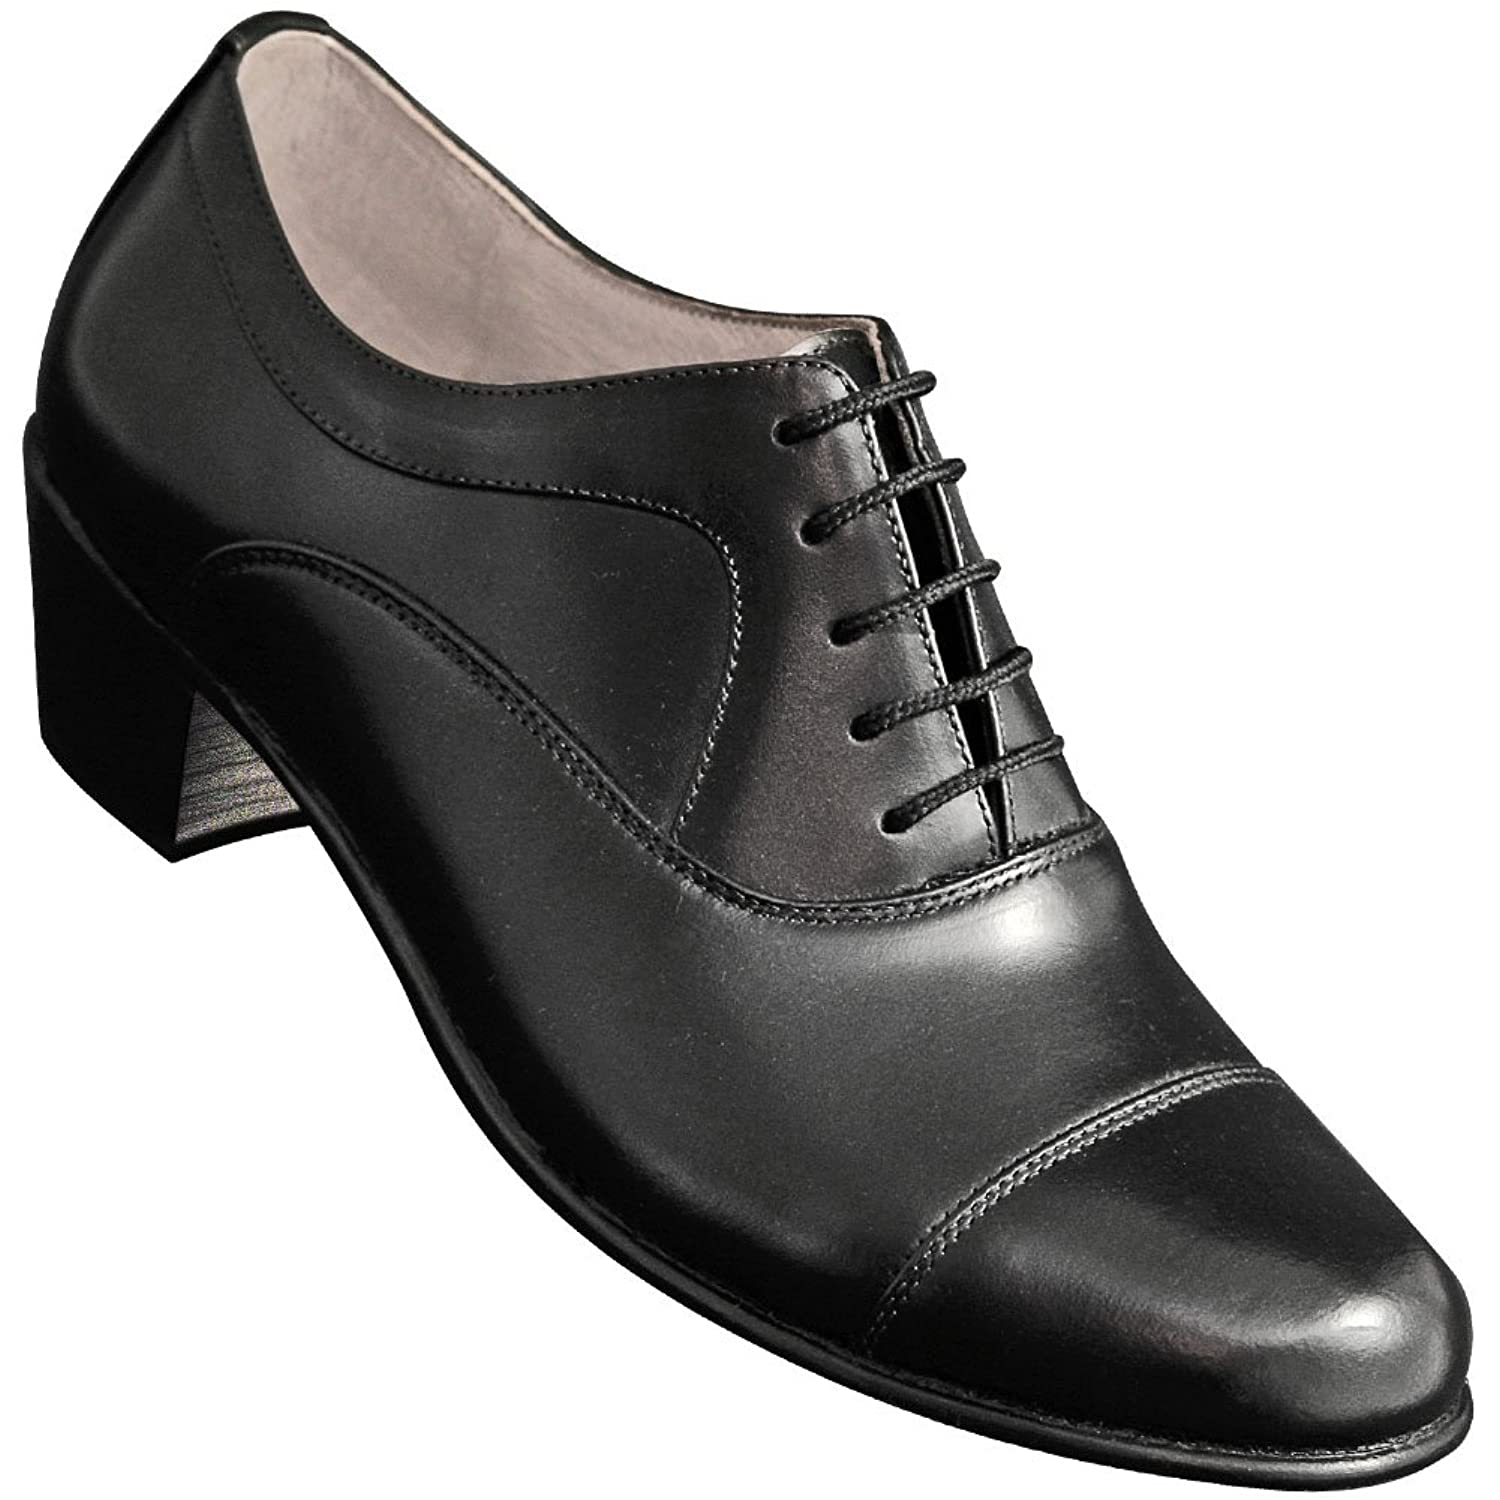 1920s Style Mens Shoes | Peaky Blinders Boots Aris Allen Mens Captoe Tango Dance Shoe $74.95 AT vintagedancer.com